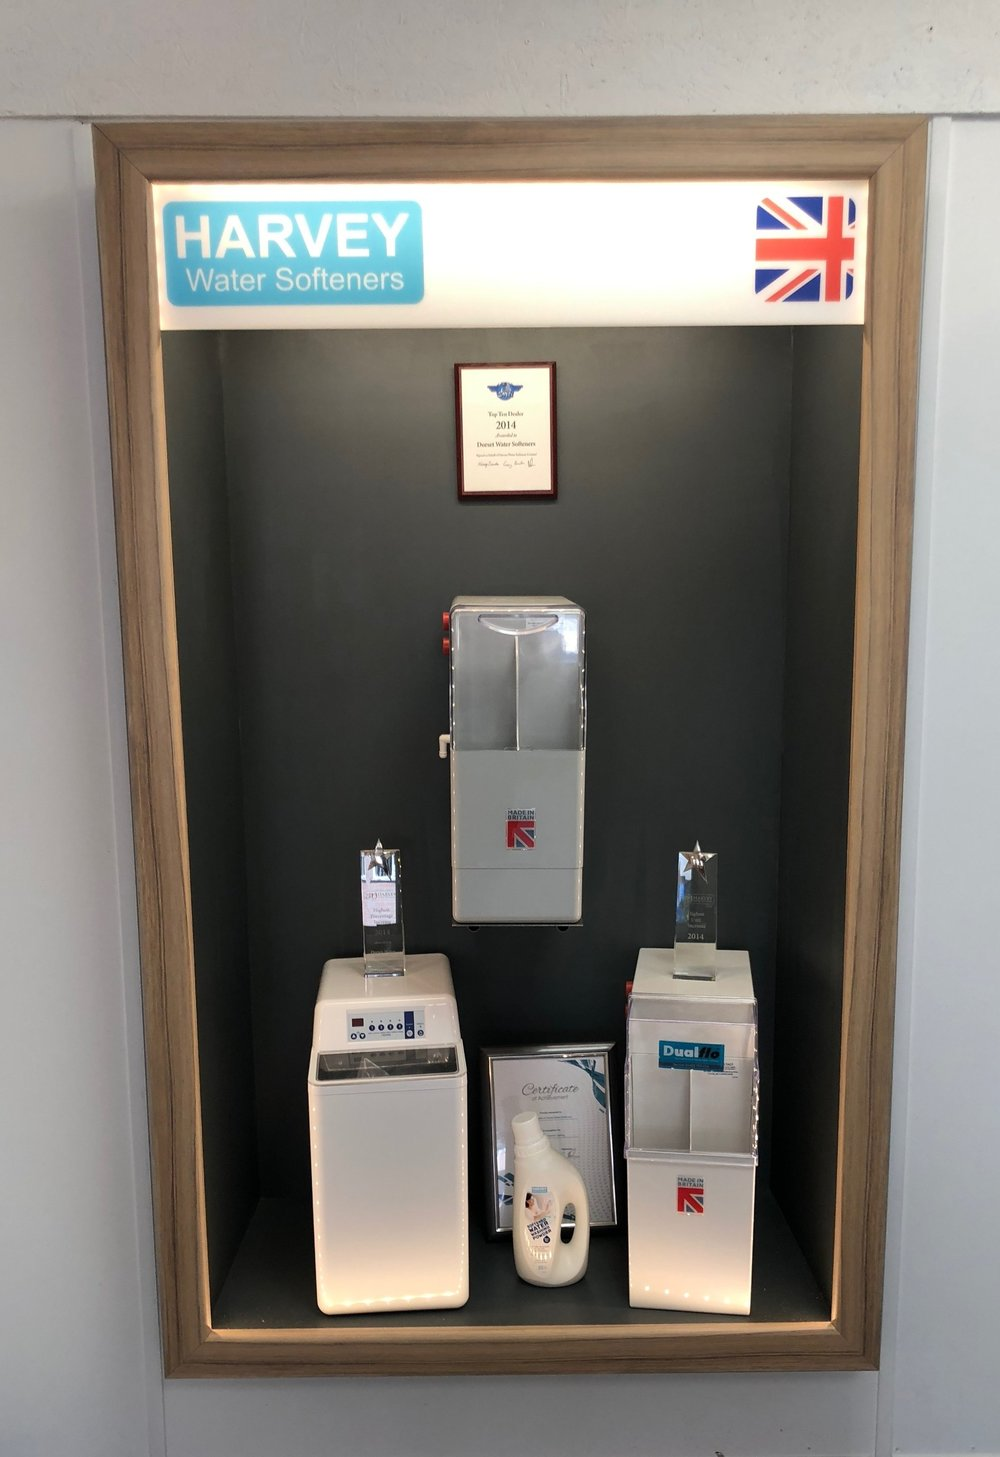 Our New Harvey Display